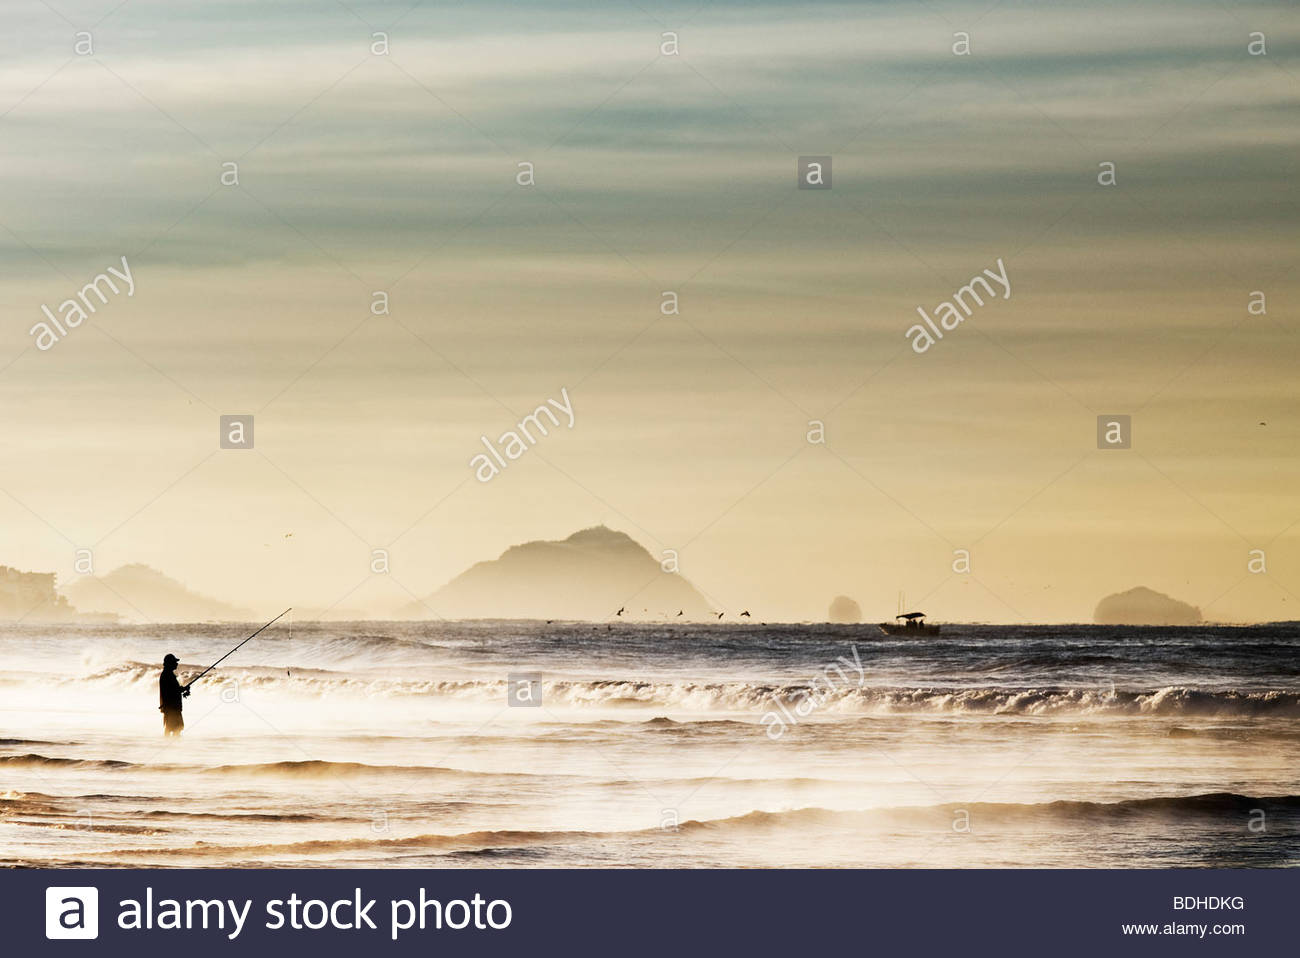 Fisherman fishing standing in the Pacific Ocean no model release required as figure silhouette totally unrecognizable - Stock Image